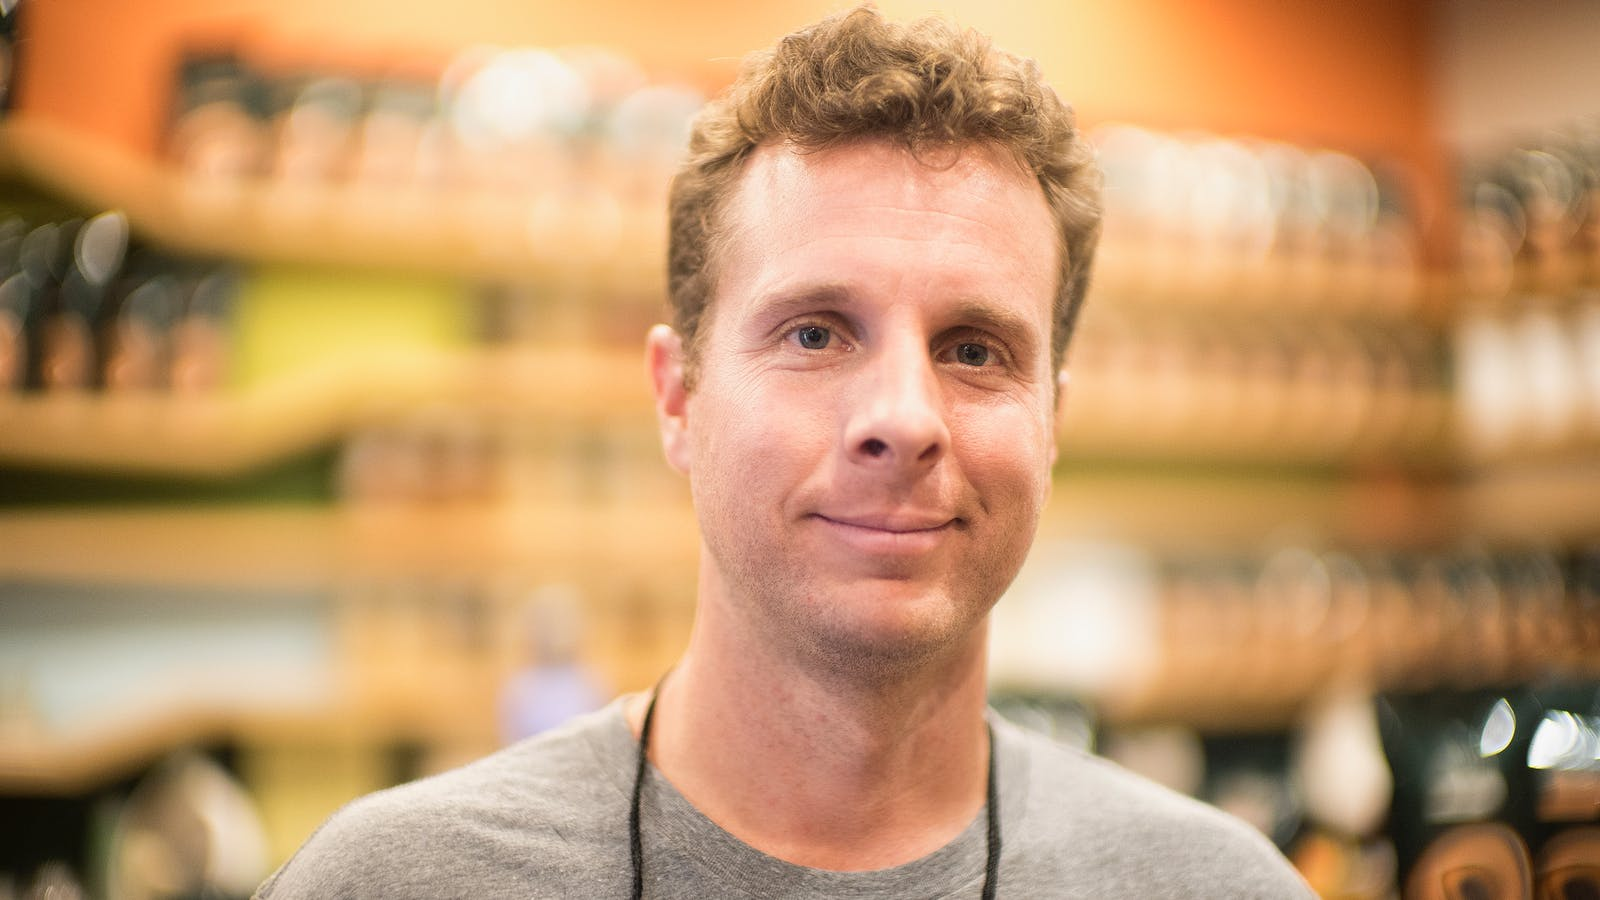 Ring CEO Jamie Siminoff. Photo by Flickr/Christopher Michel